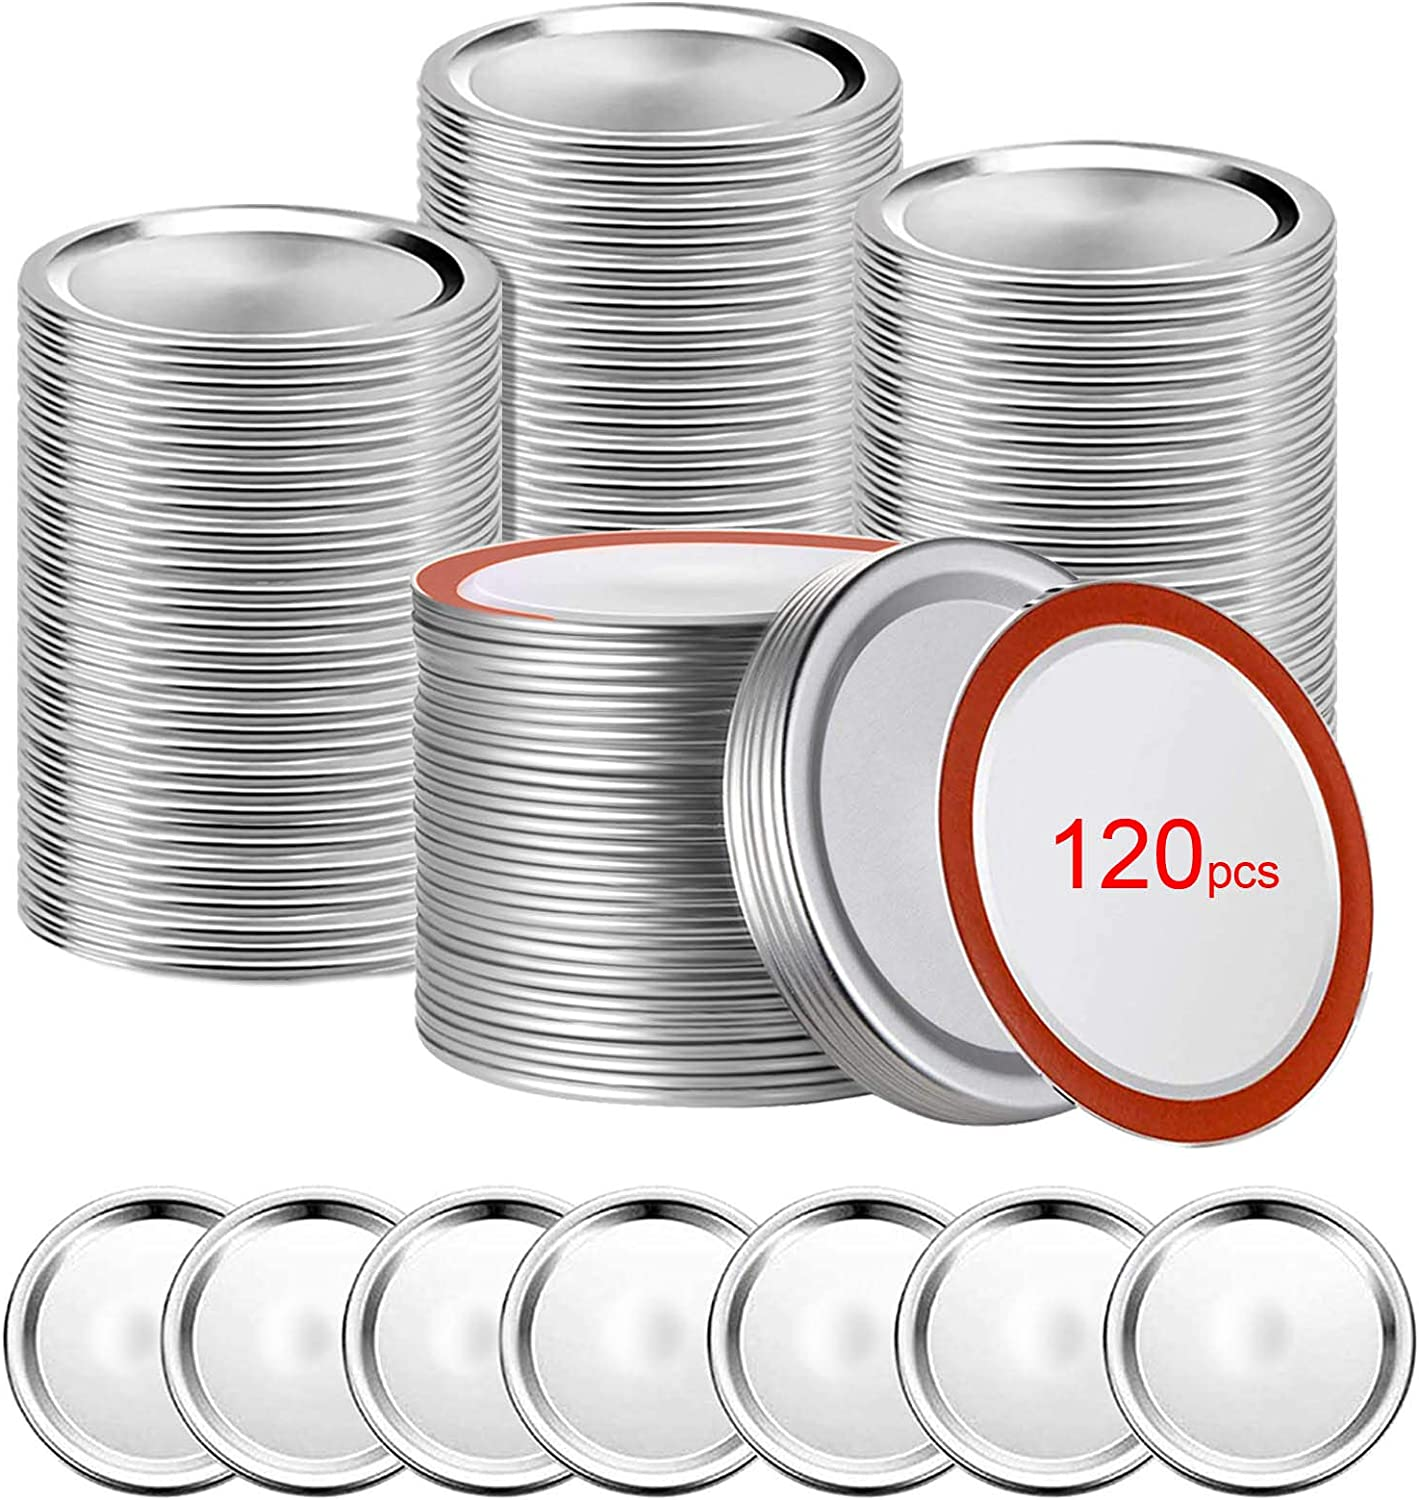 Canning Lids,120 PCS Mason Jar Lids,Regular Mouth Canning Lids,Premium Metal Lid Split-Type with Airtight Seal and Leak proof,Use for Home Canning & Food Storage (Silver, 120)